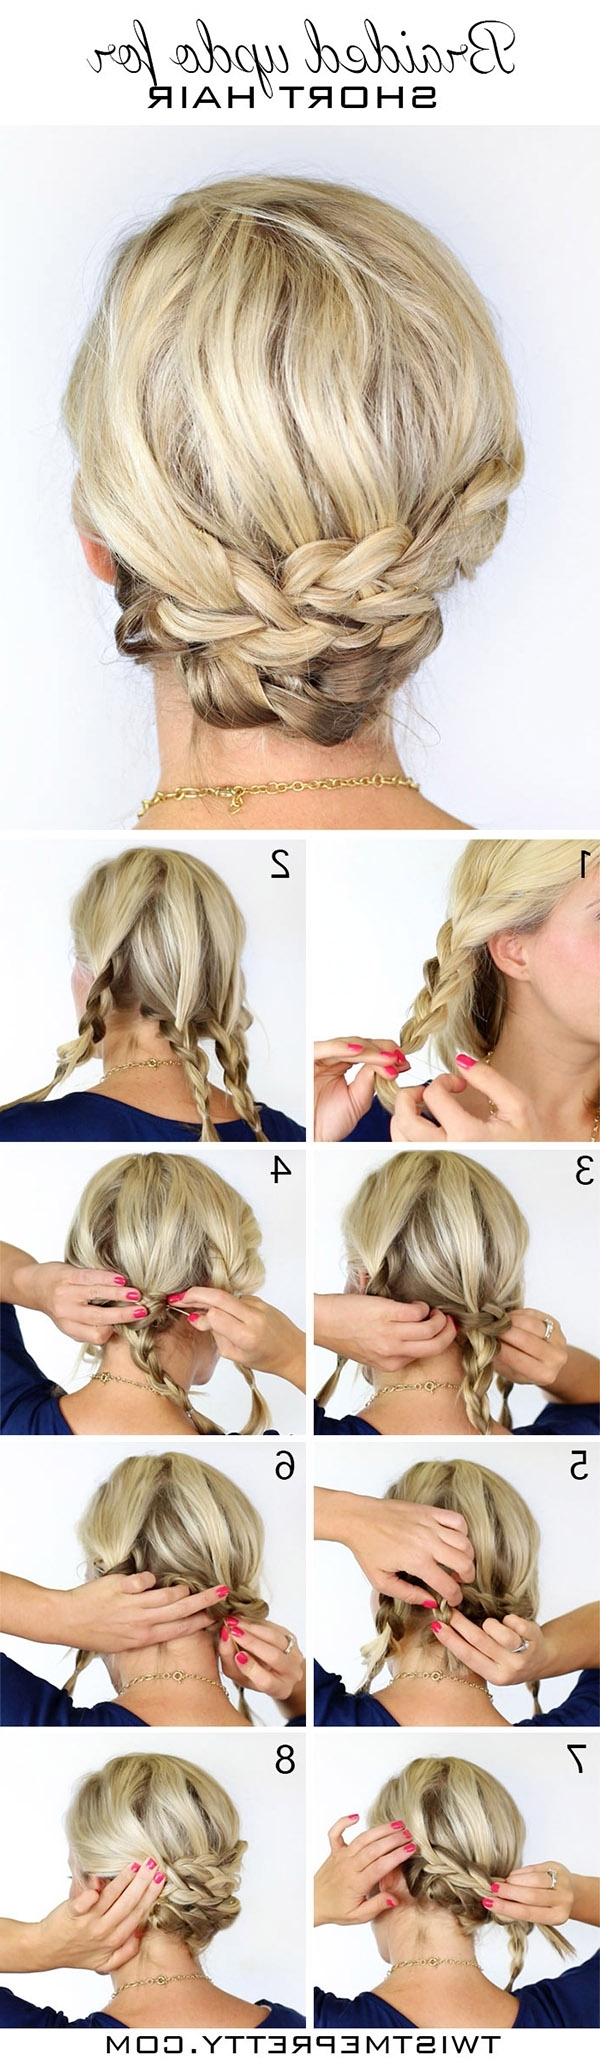 20 Diy Wedding Hairstyles With Tutorials To Try On Your Own Regarding Wedding Updo Hairstyles For Short Hair (View 3 of 15)